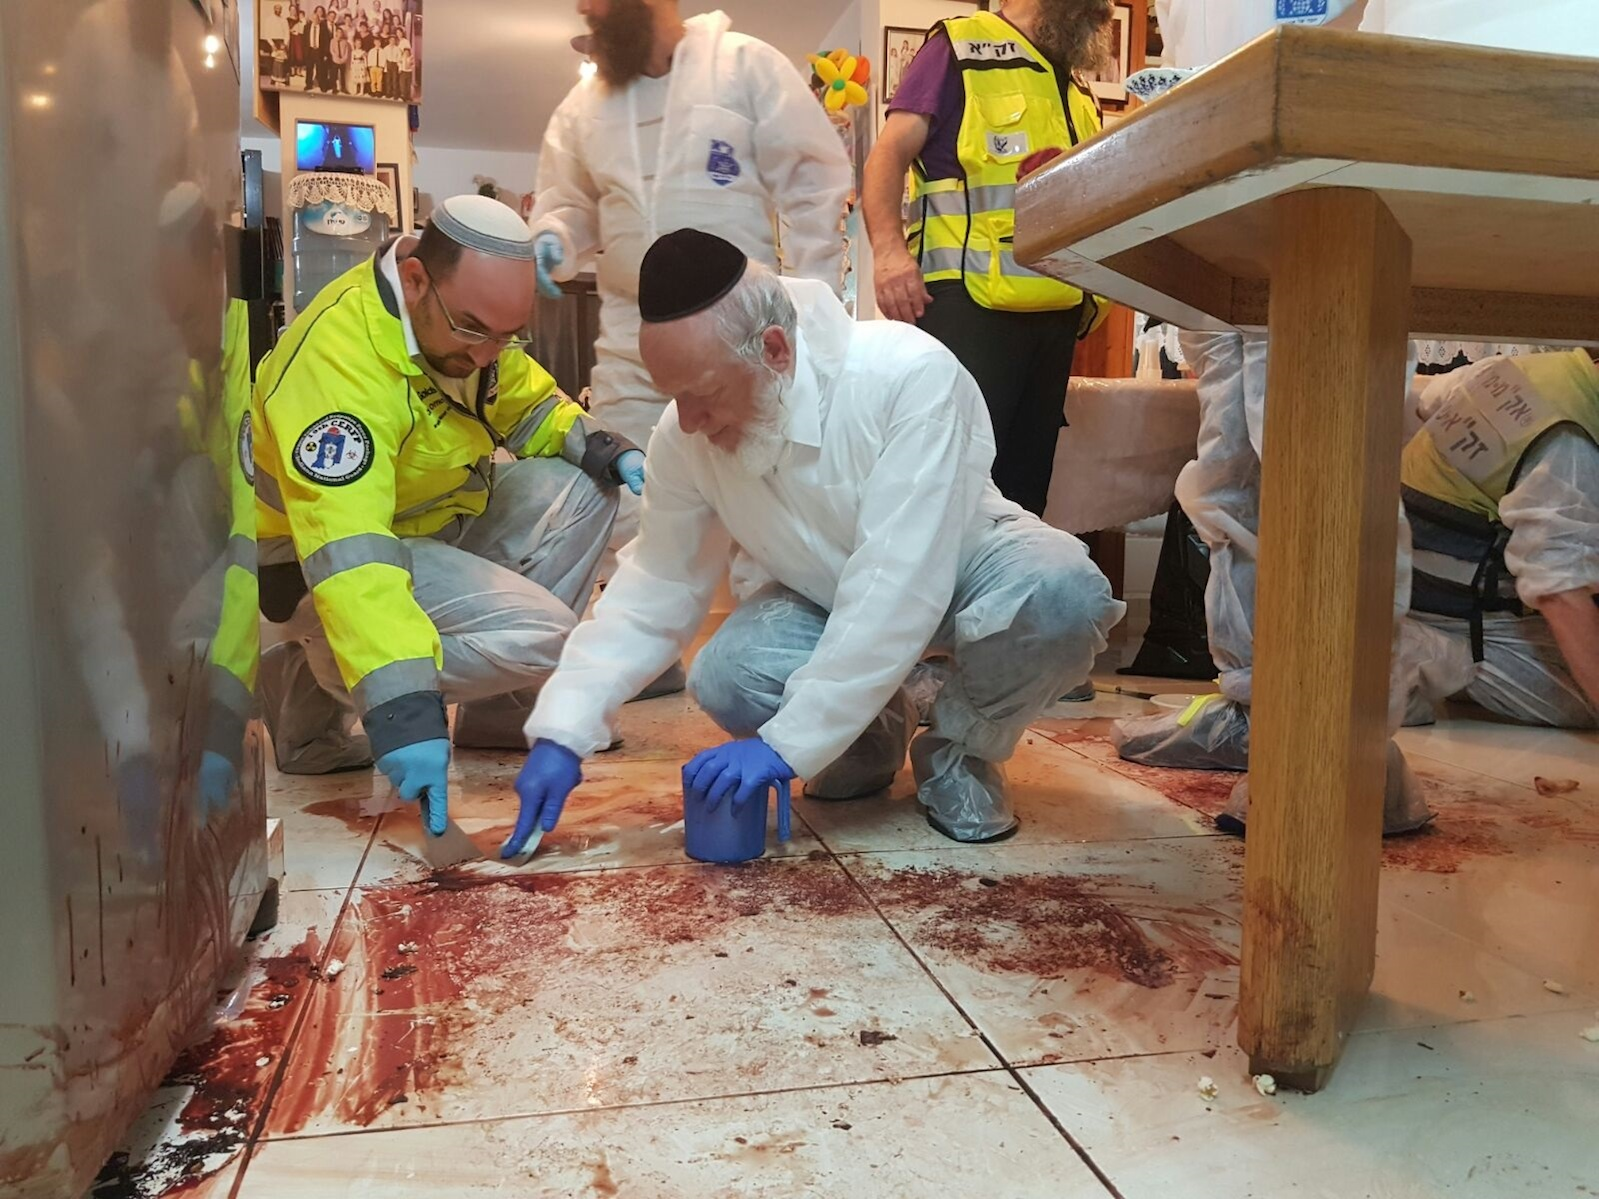 """The ZAKA volunteer emergency response group—including its chairman, Yehuda Meshi Zahav (pictured in front, center)—cleans up the scene of Friday night's deadly Palestinian terror attack at the Salomon family home in Halamish. Zahav said the """"scenes of a bloodbath…shocked us all to the core—even the most veteran ZAKA volunteers."""" Credit: Yehezkiel Itkin/ZAKA."""